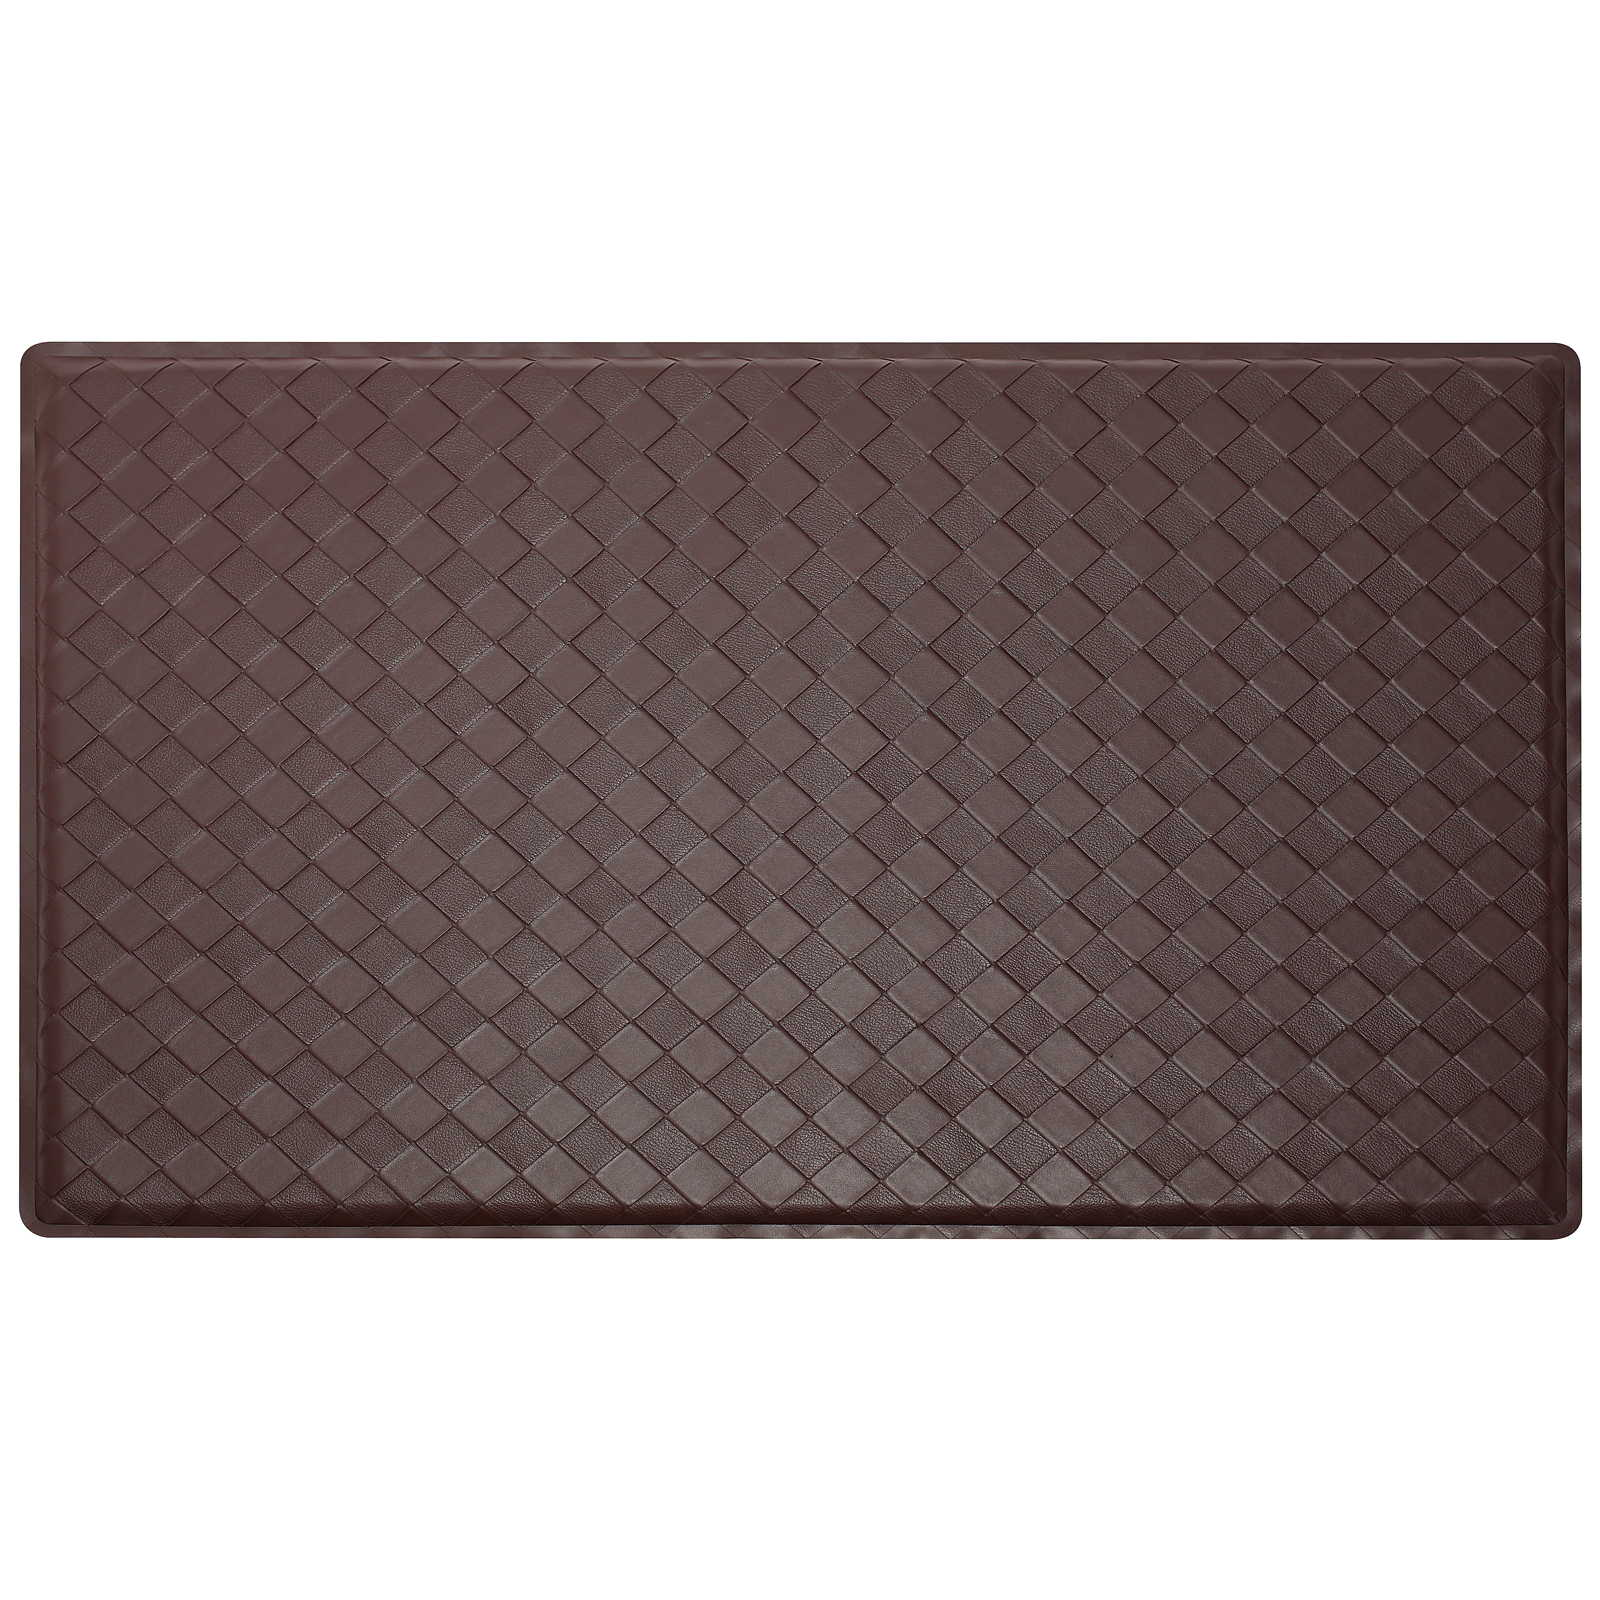 2' X 3' Modern Anti-Fatigue Kitchen Floor Mat Rug